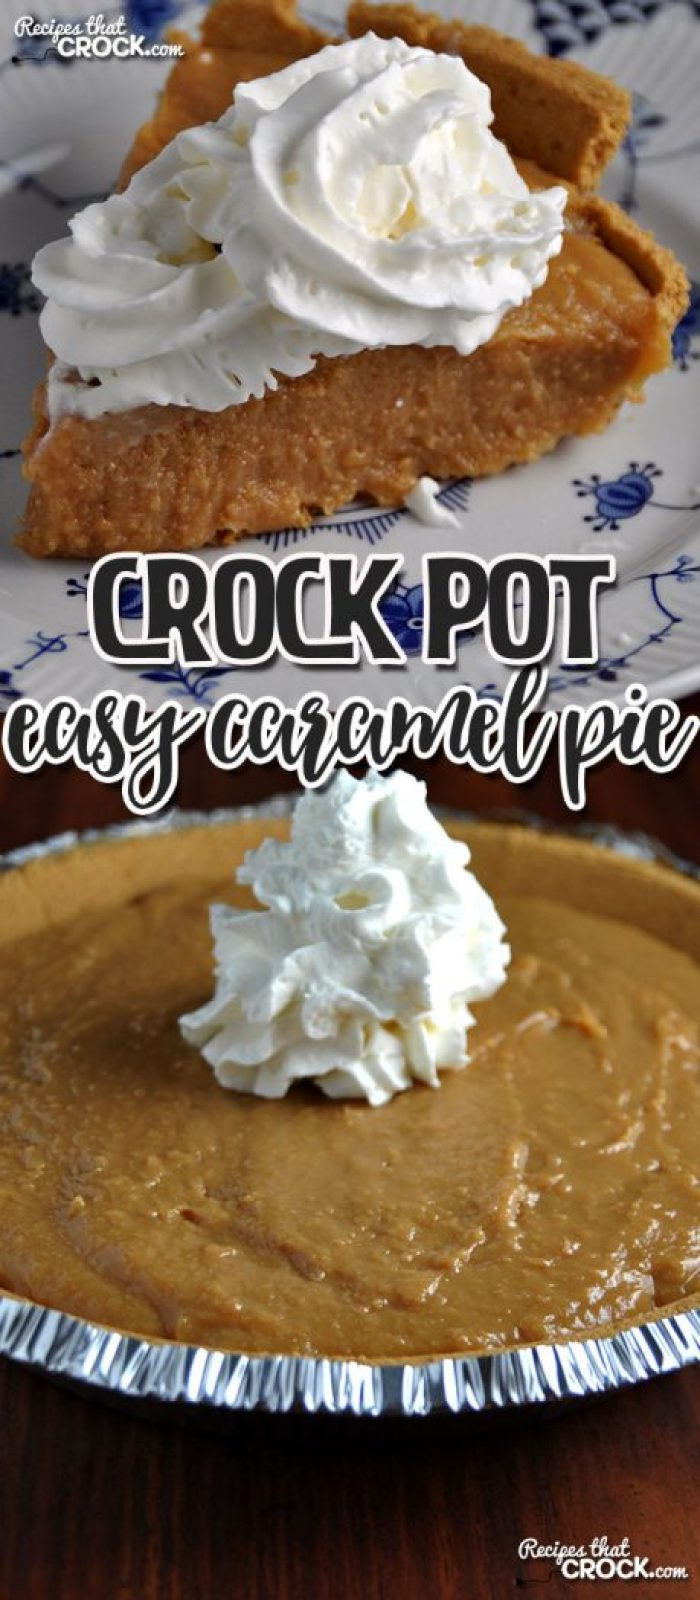 This Easy Crock Pot Caramel Pie tastes divine and is amazingly simple to make!